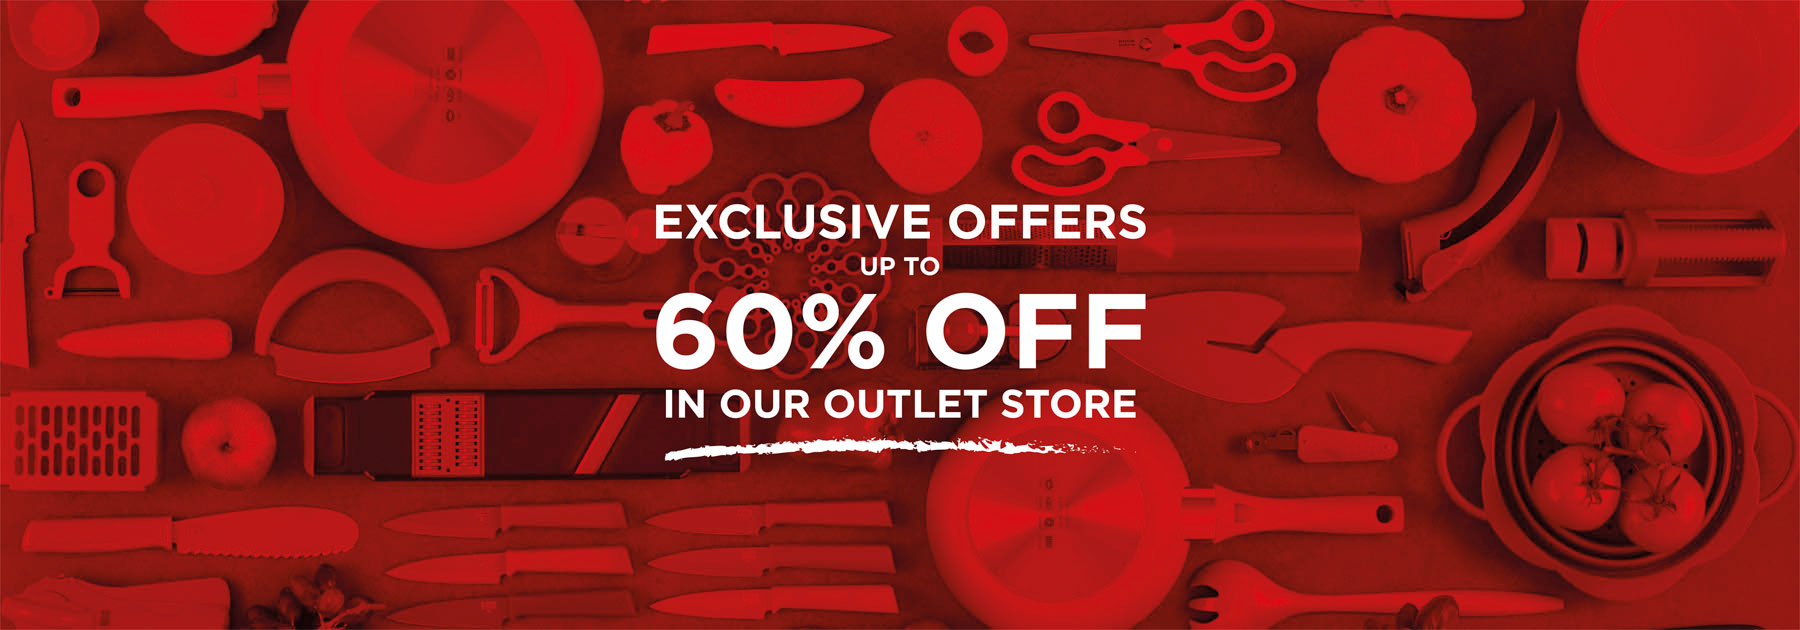 offer, promotion, save, discount, cookware